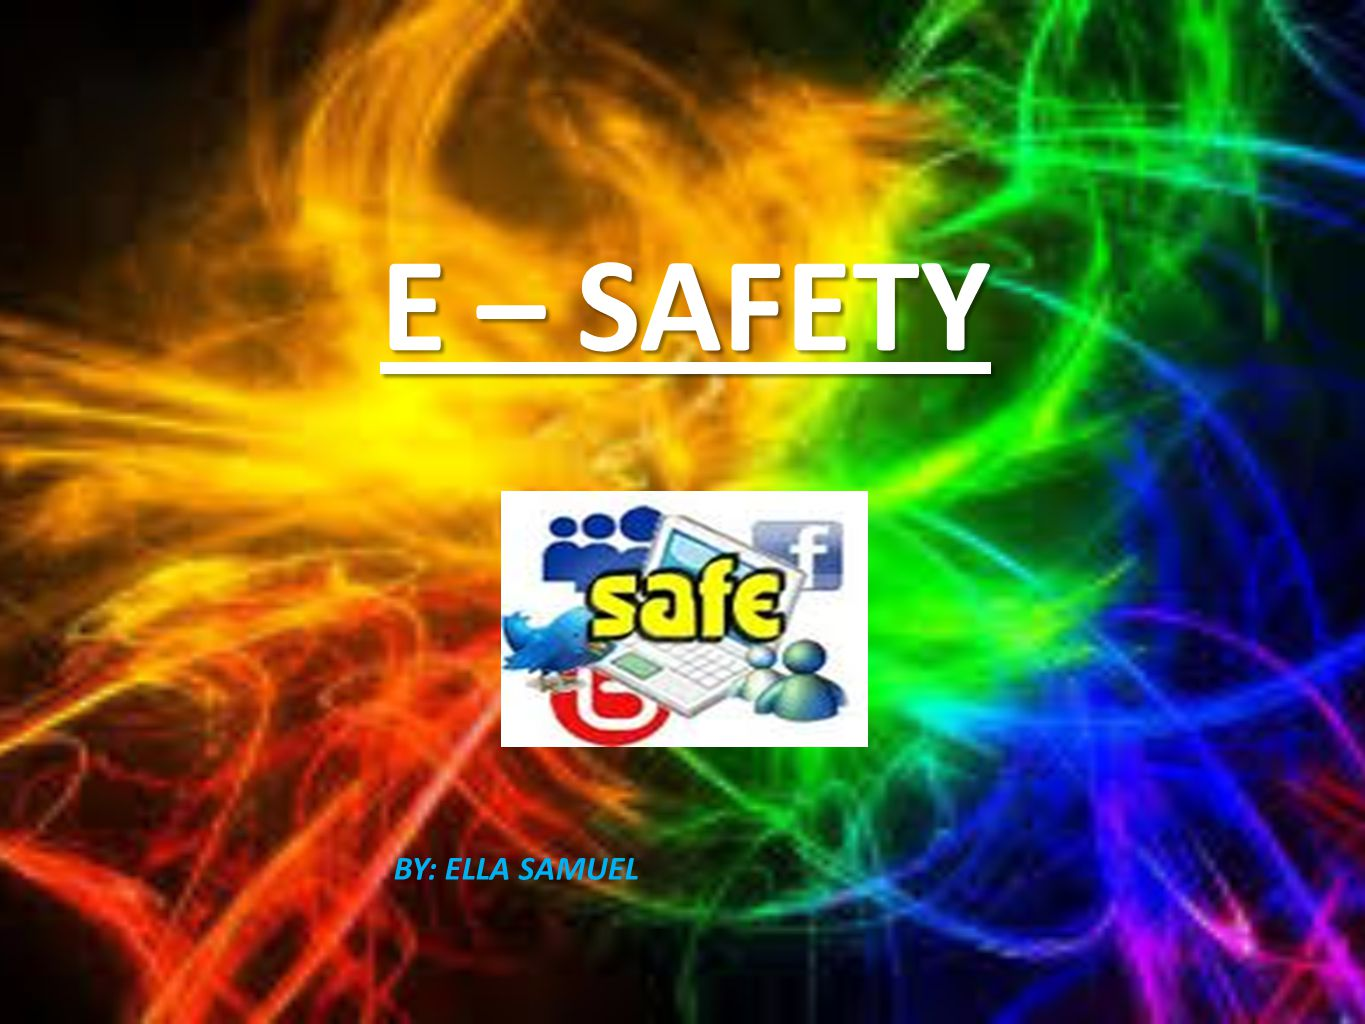 E – SAFETY BY: ELLA SAMUEL